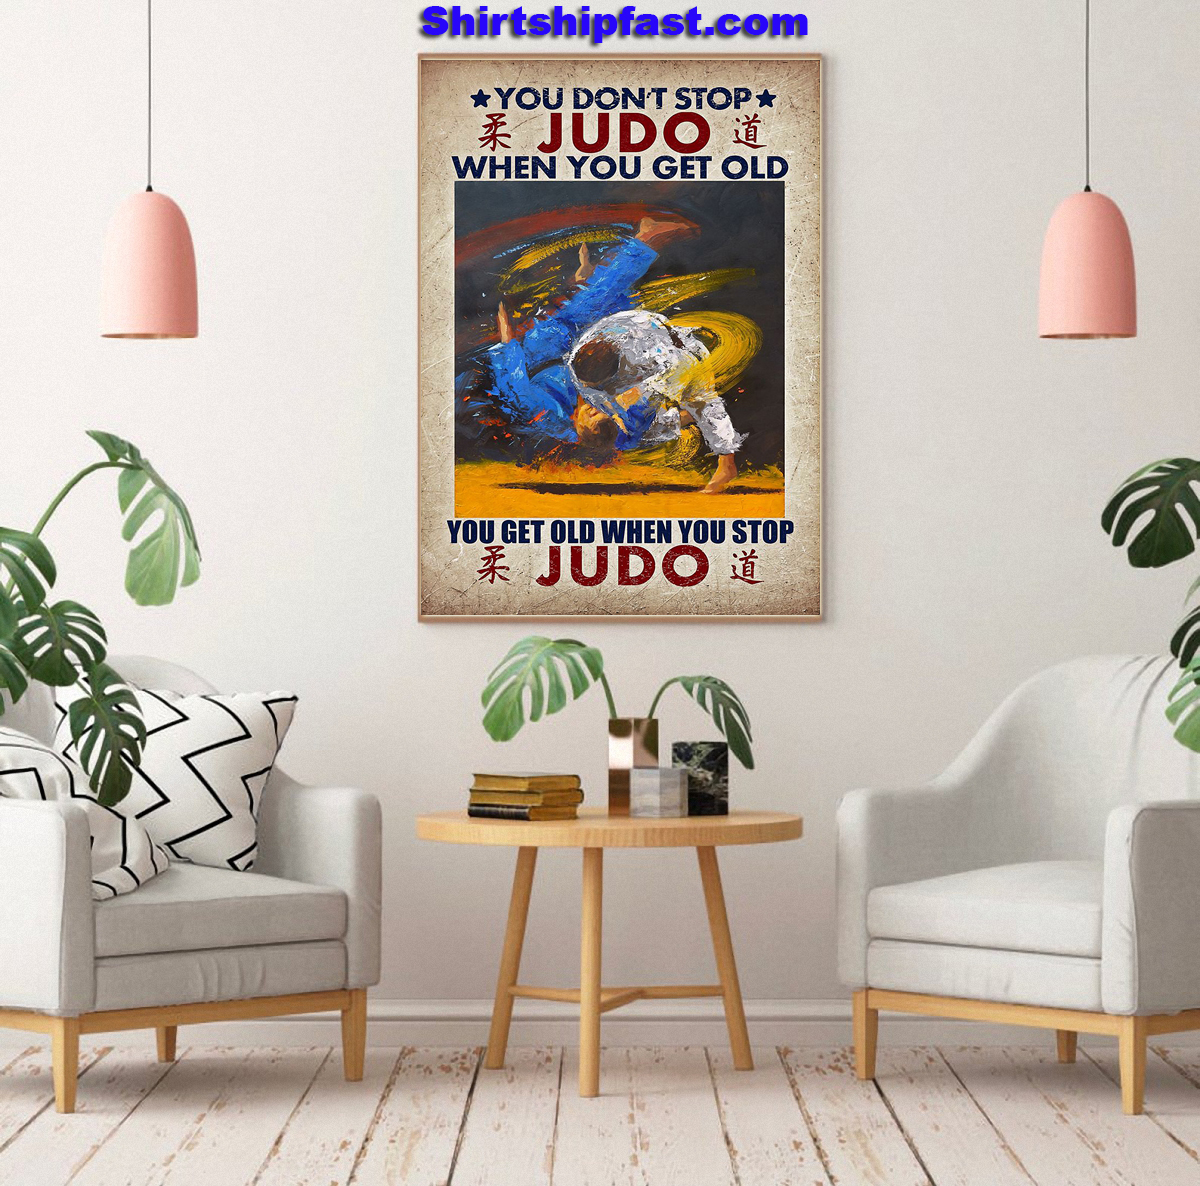 You don't stop judo when you get old canvas prints - Picture 2